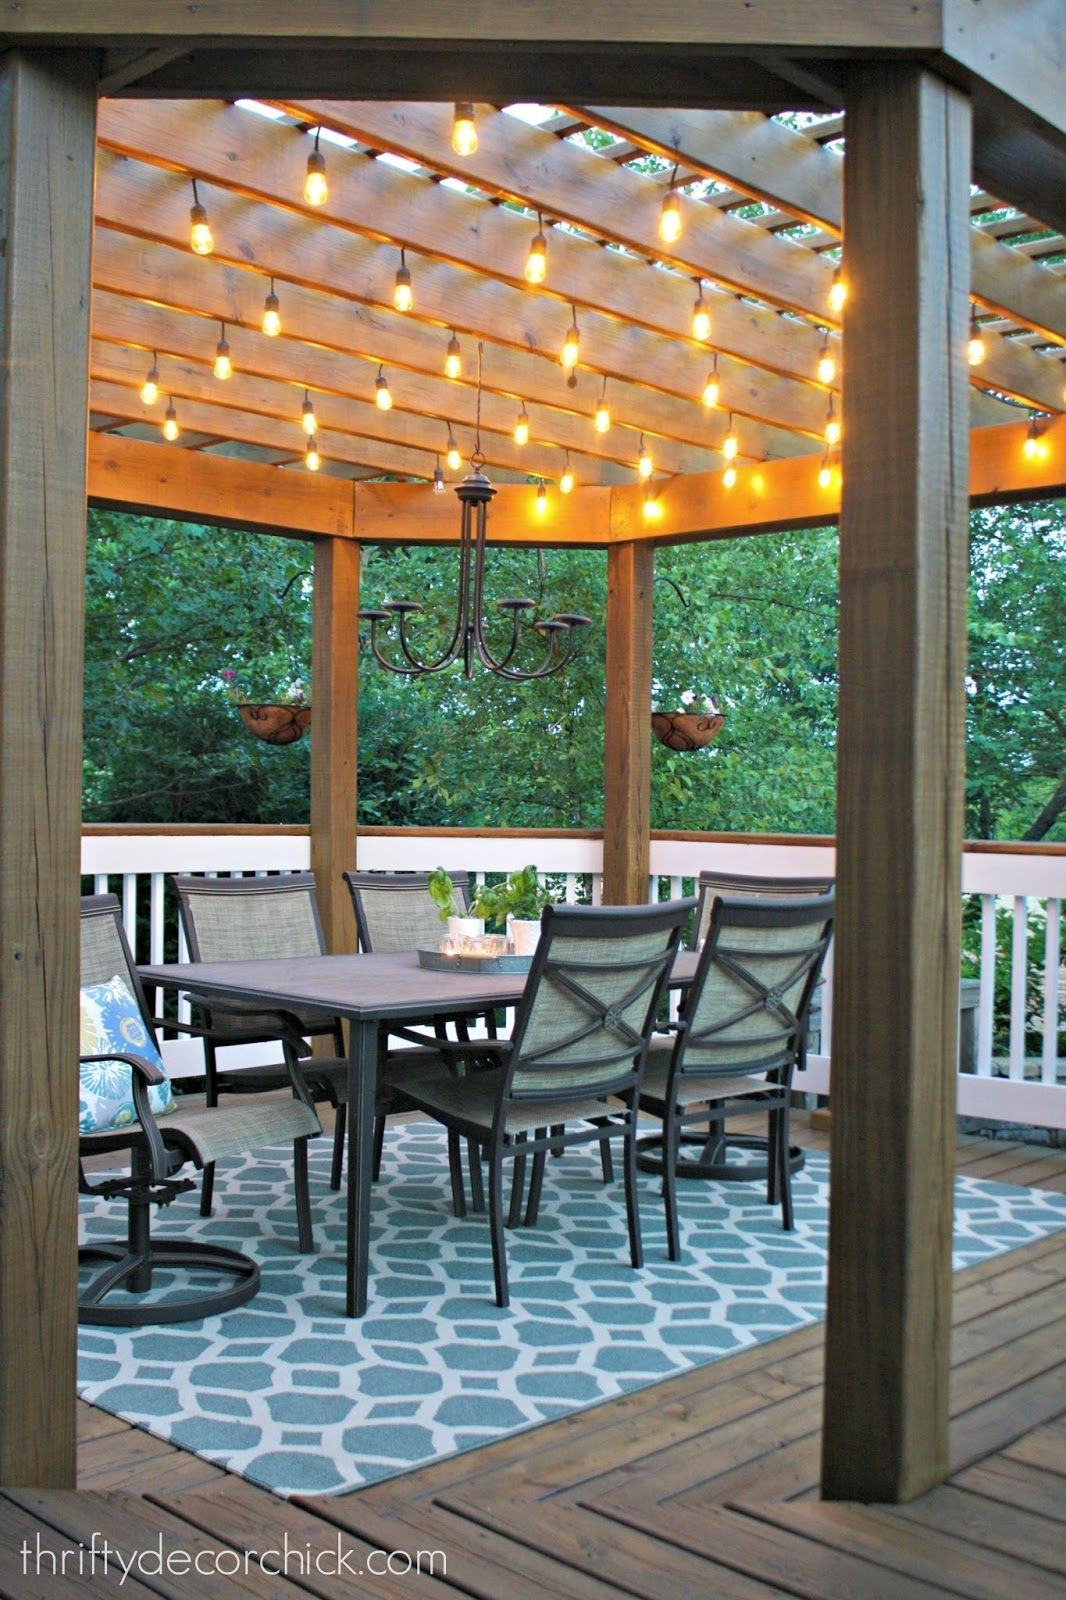 Our beautiful outdoor dining room Lights Pergolas and Backyard